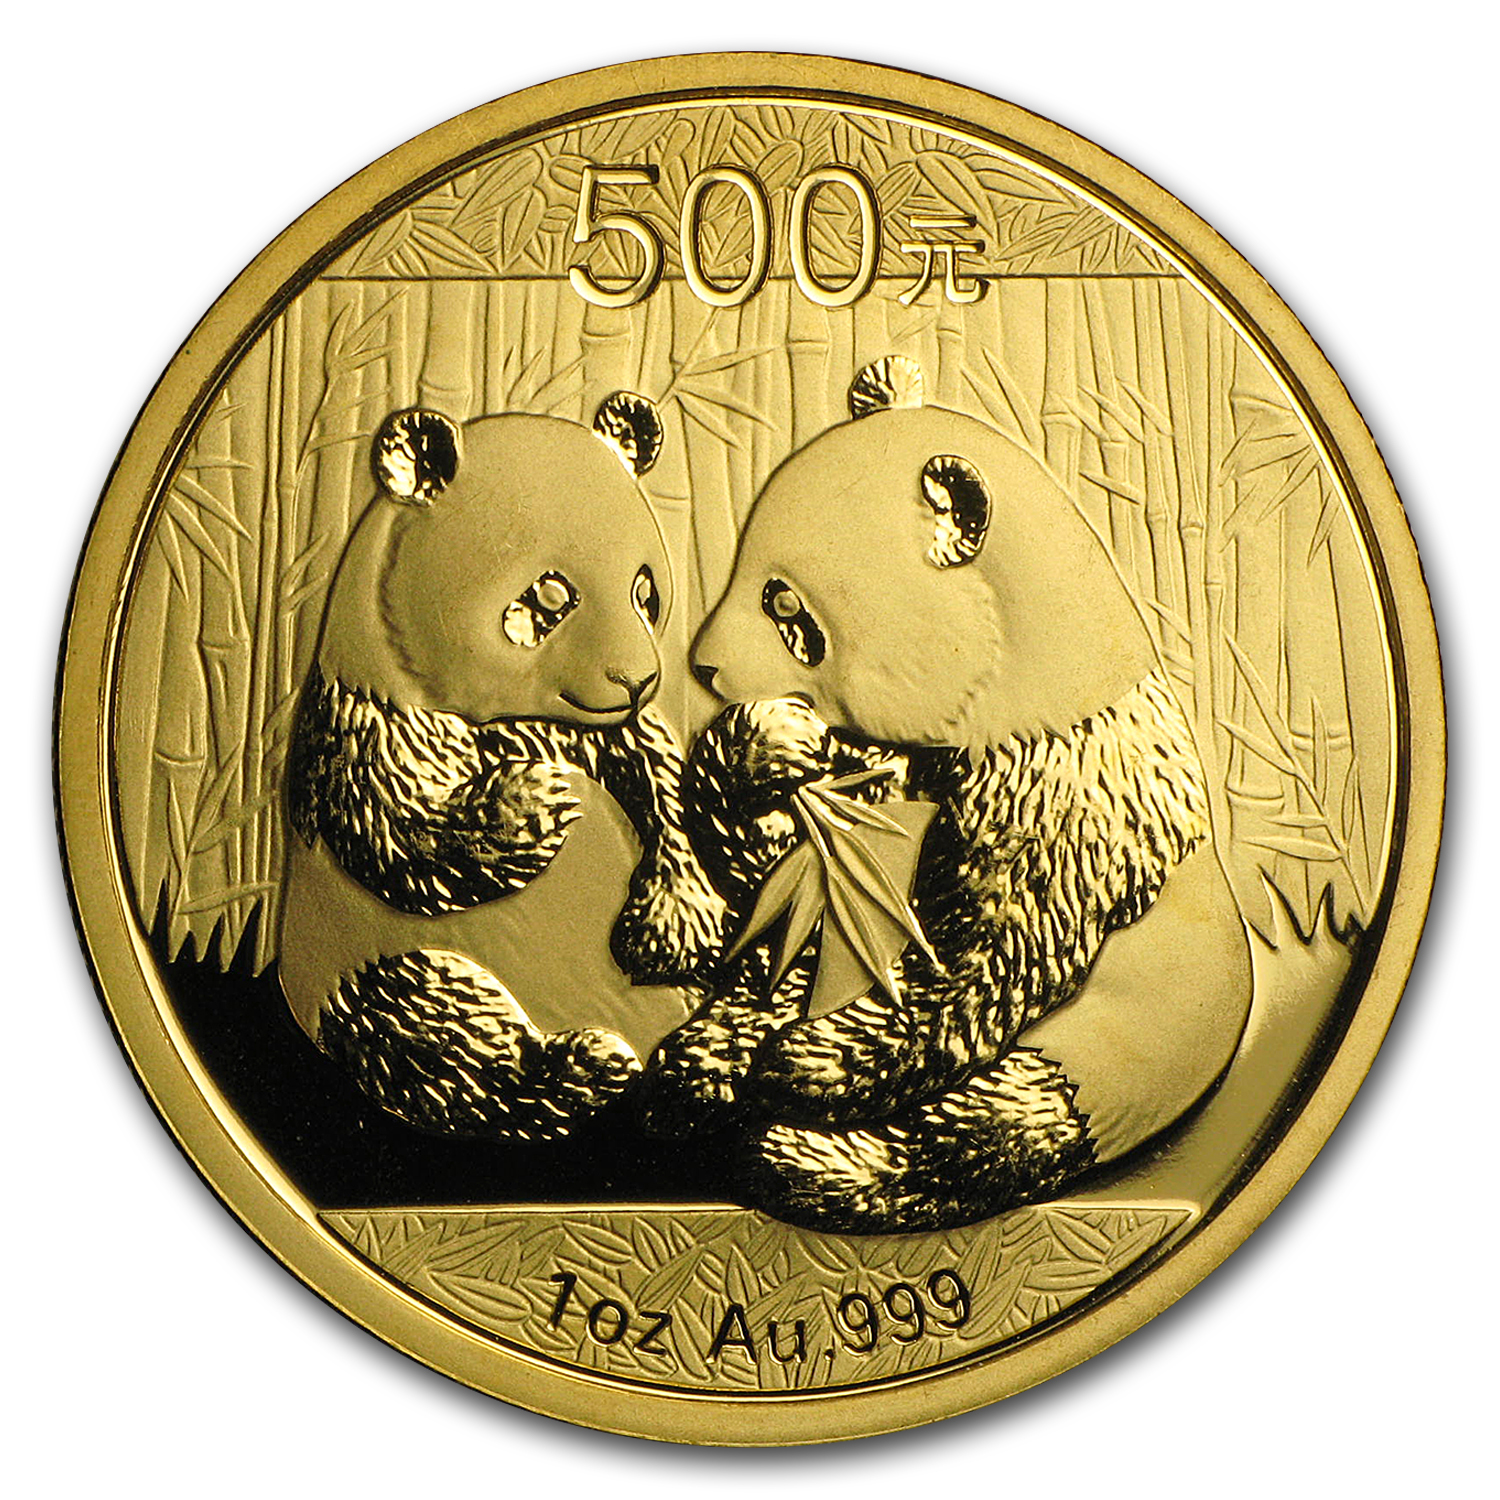 2009 China 1 oz Gold Panda BU (Not Sealed)